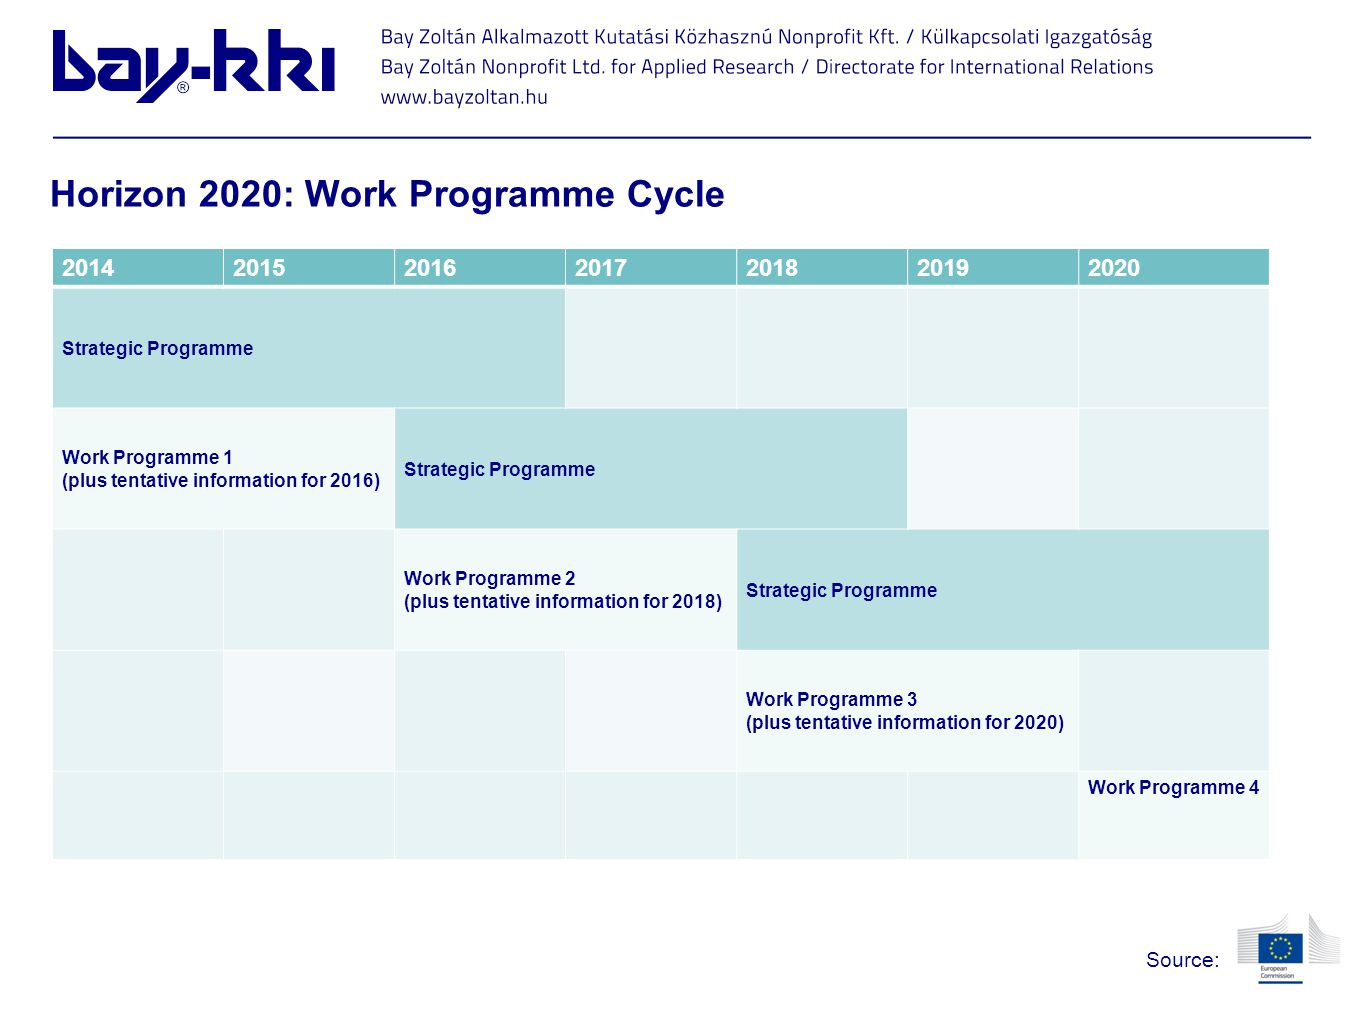 Horizon 2020: Work Programme Cycle